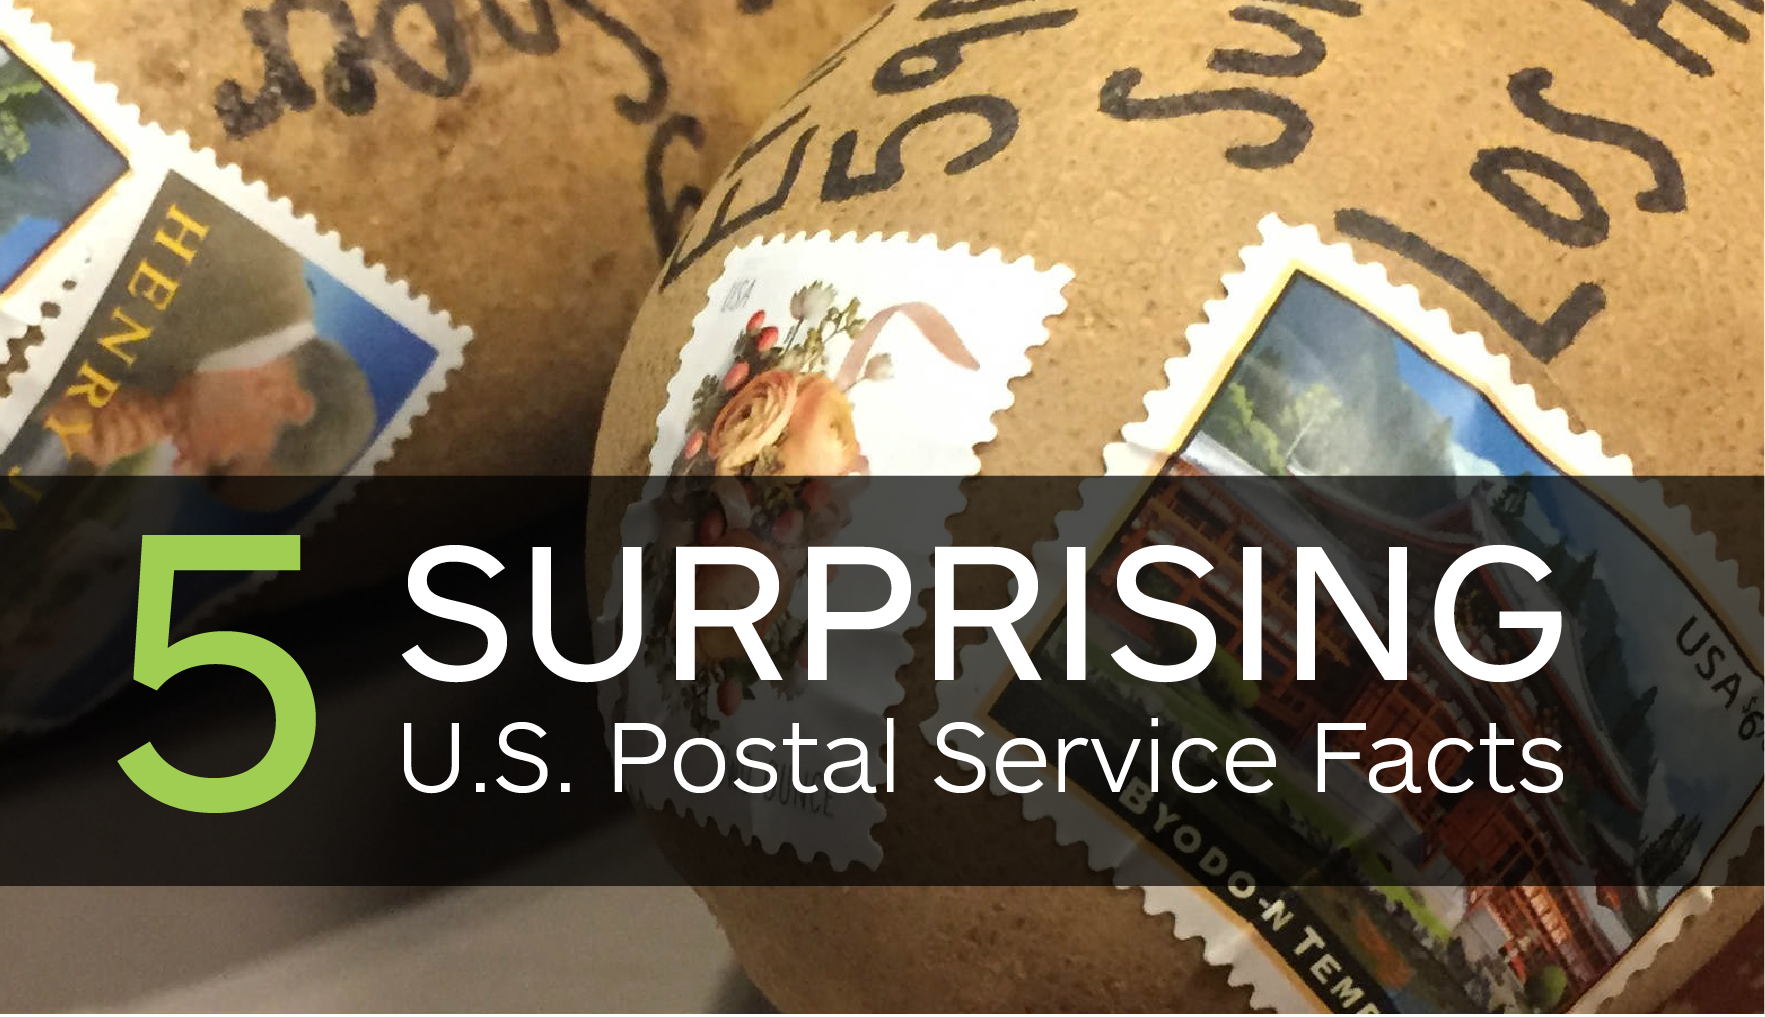 5 Surprising U.S. Postal Service Facts